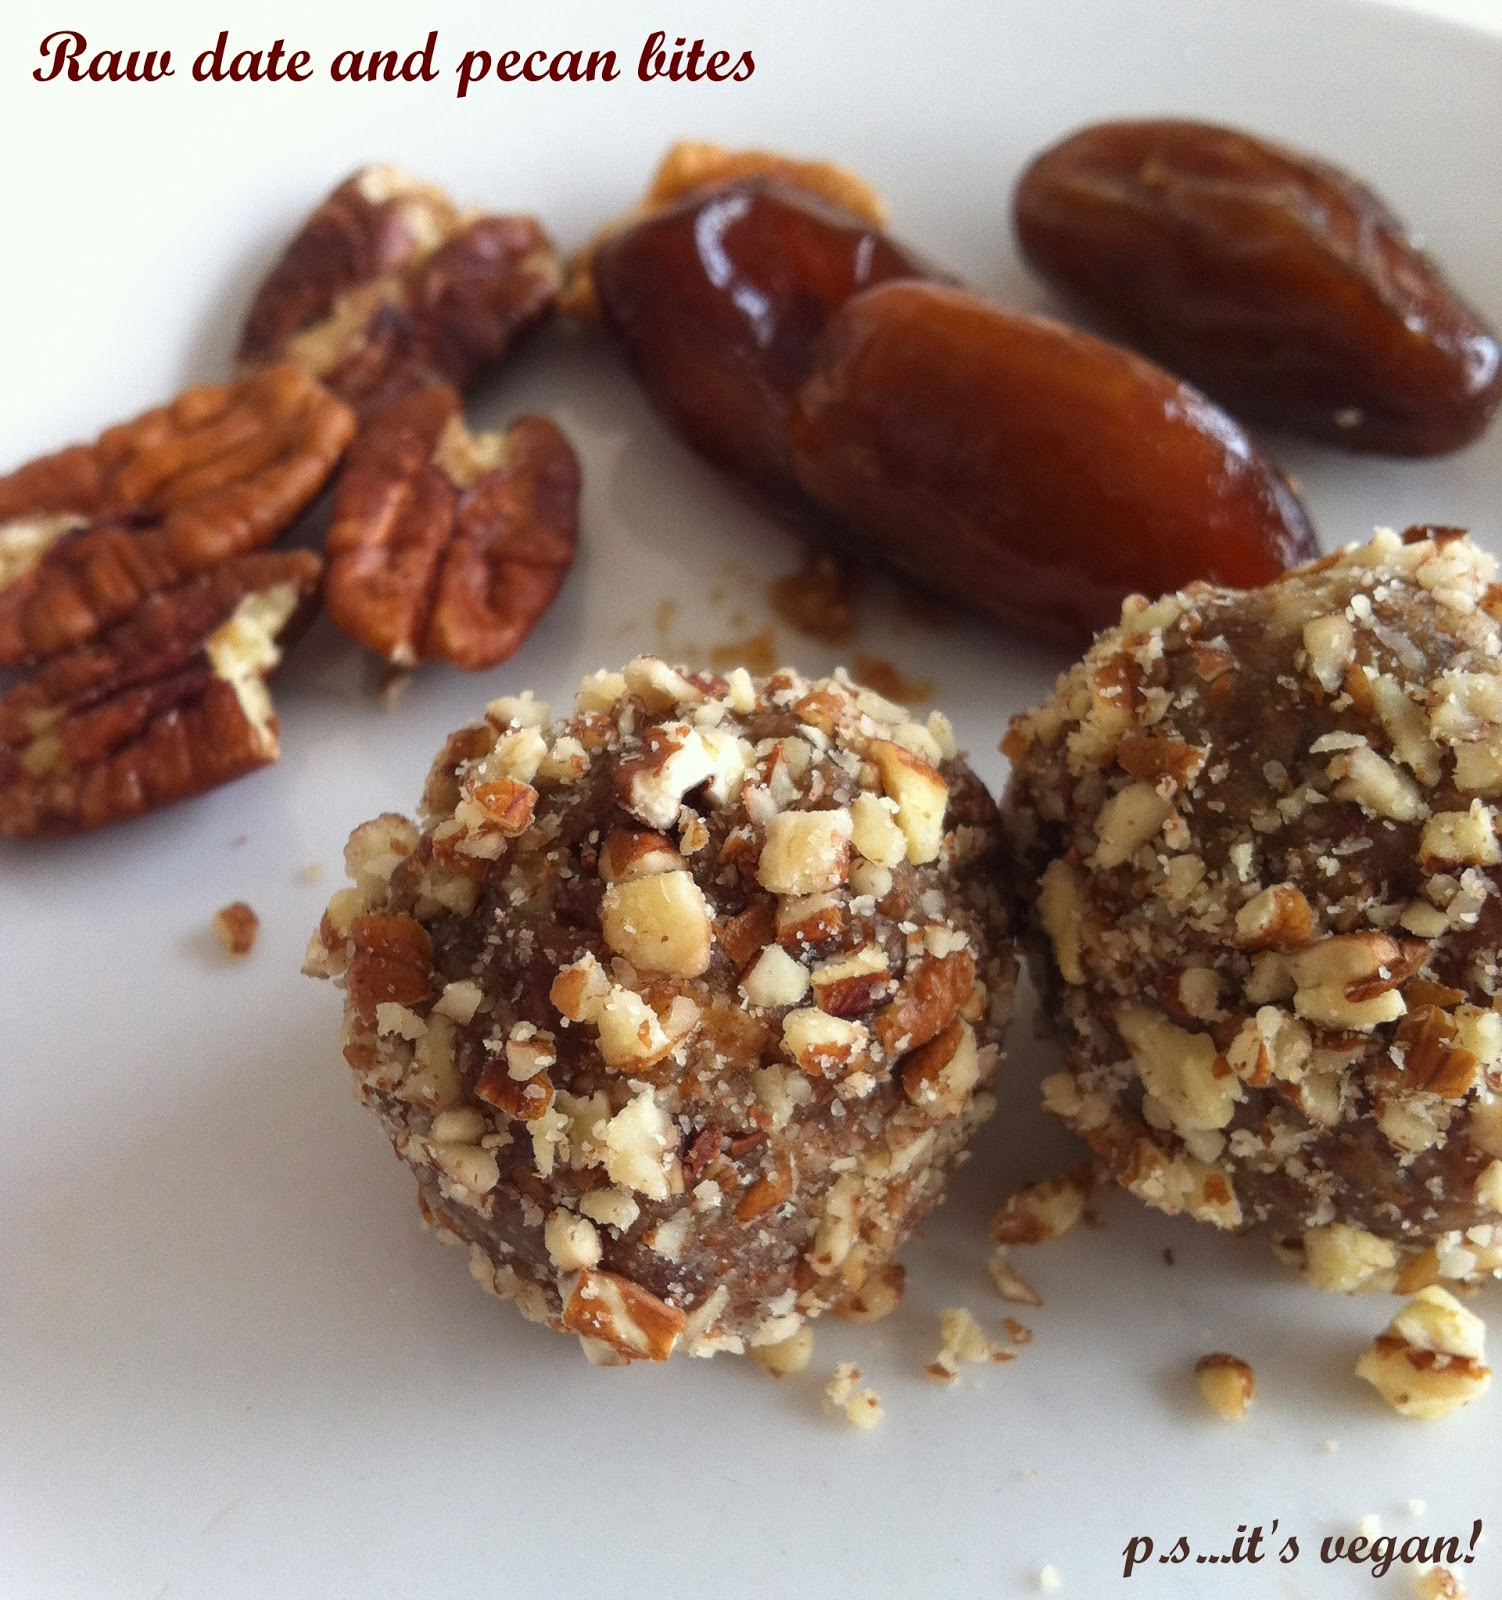 Raw date and pecan bites